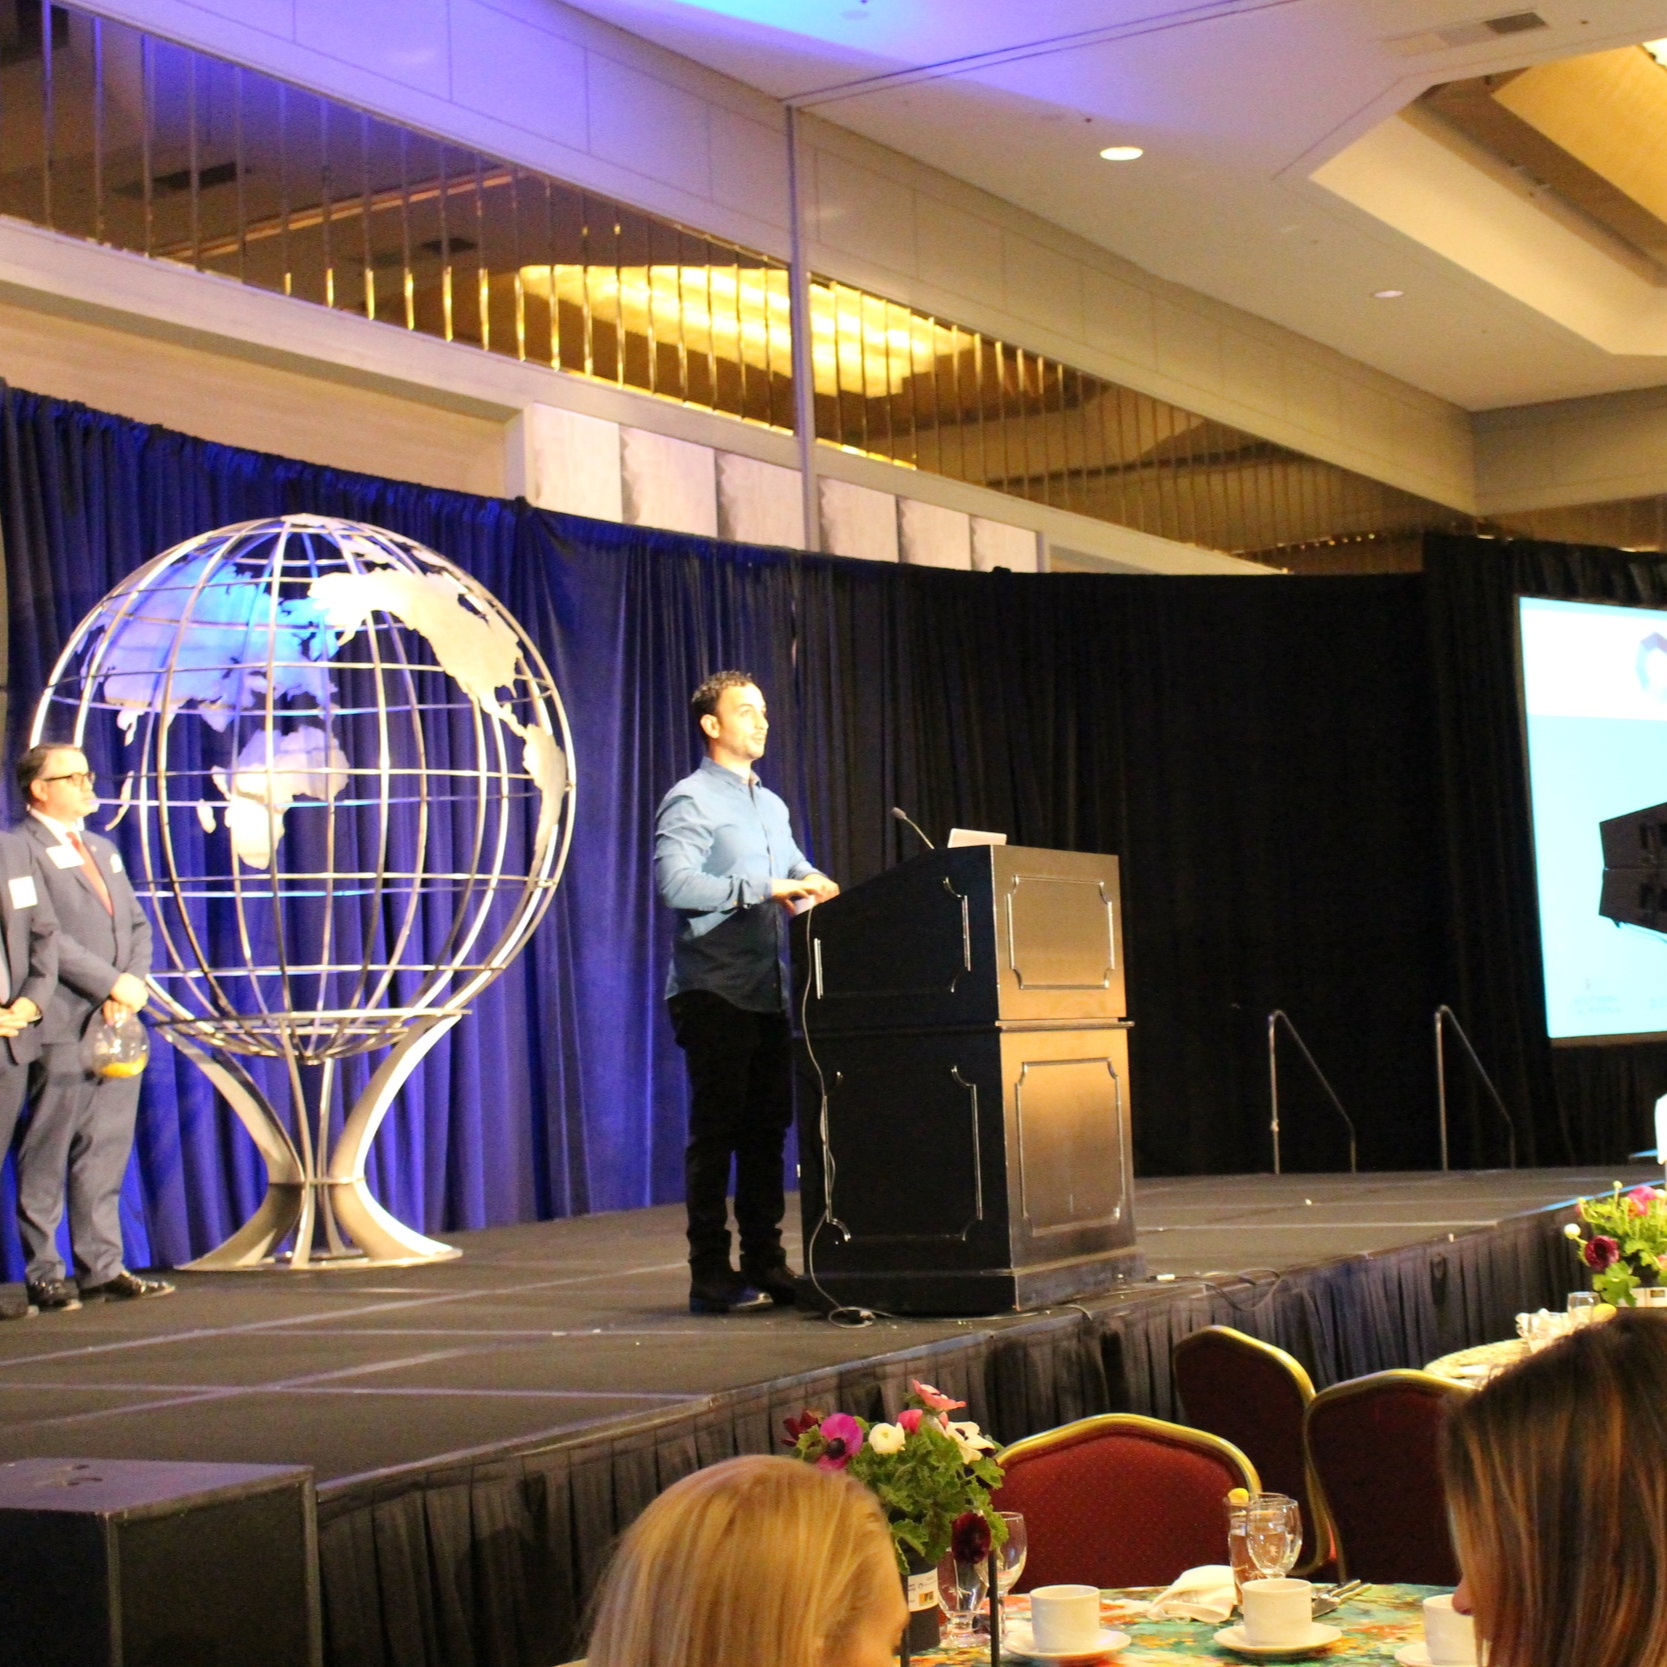 GMID Speaking engagement 4/12/18 - The Dream Builders Project founder, Mayer Dahan, spoke at the Global Meetings Industry Day to the hotel industry about human trafficking in Los Angeles and our partnership with the Los Angeles Police Department Human Trafficking Unit.